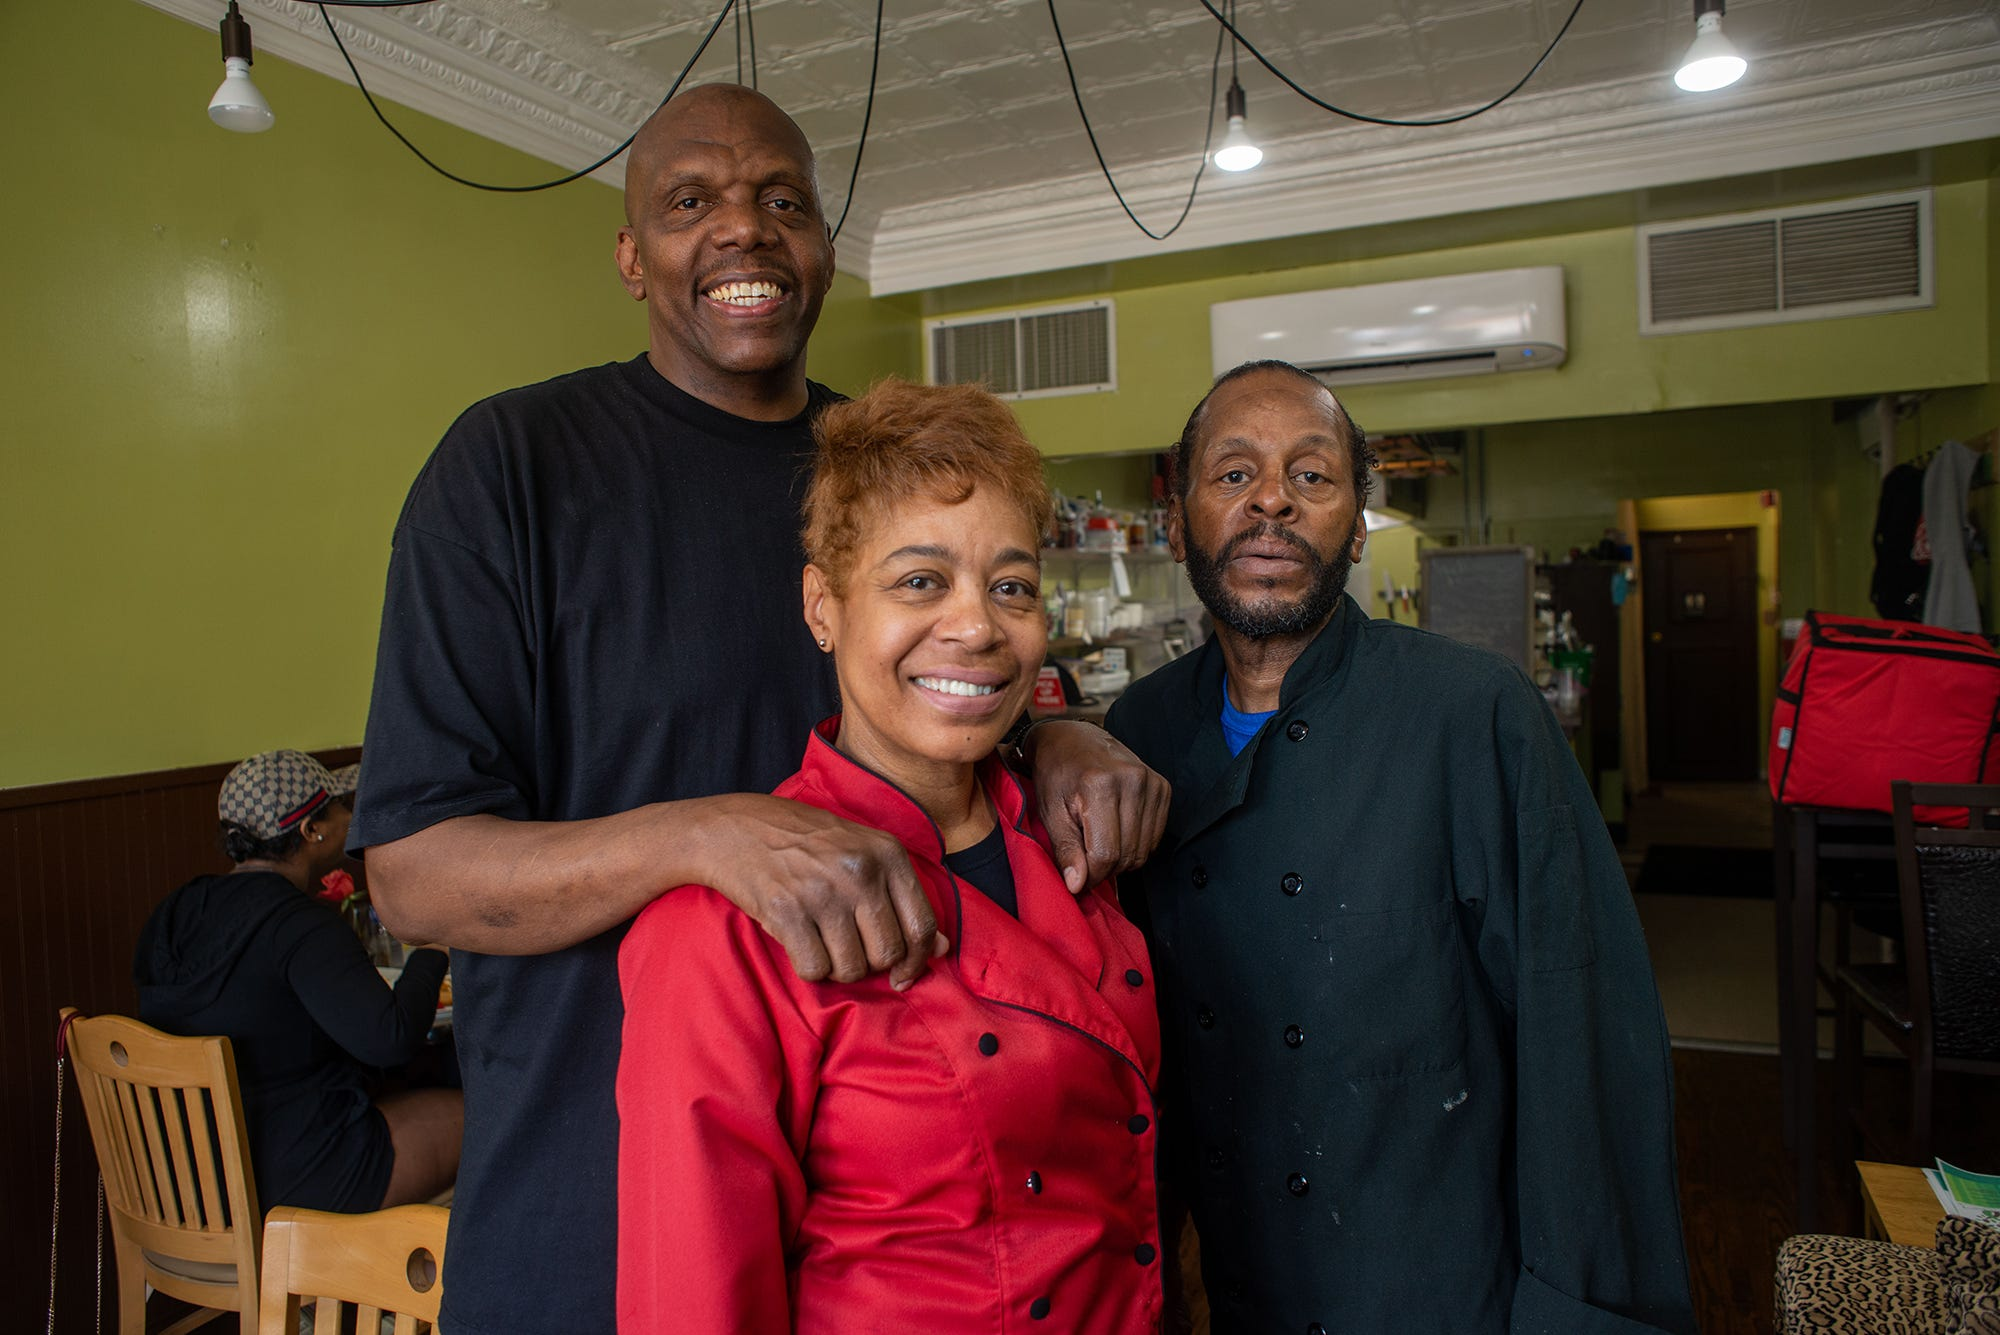 From left, John Taylor, Stephanie Taylor and Chef Dawud Lee at Welcome Home Café on June 9, 2021, in Jenkintown, Pa.